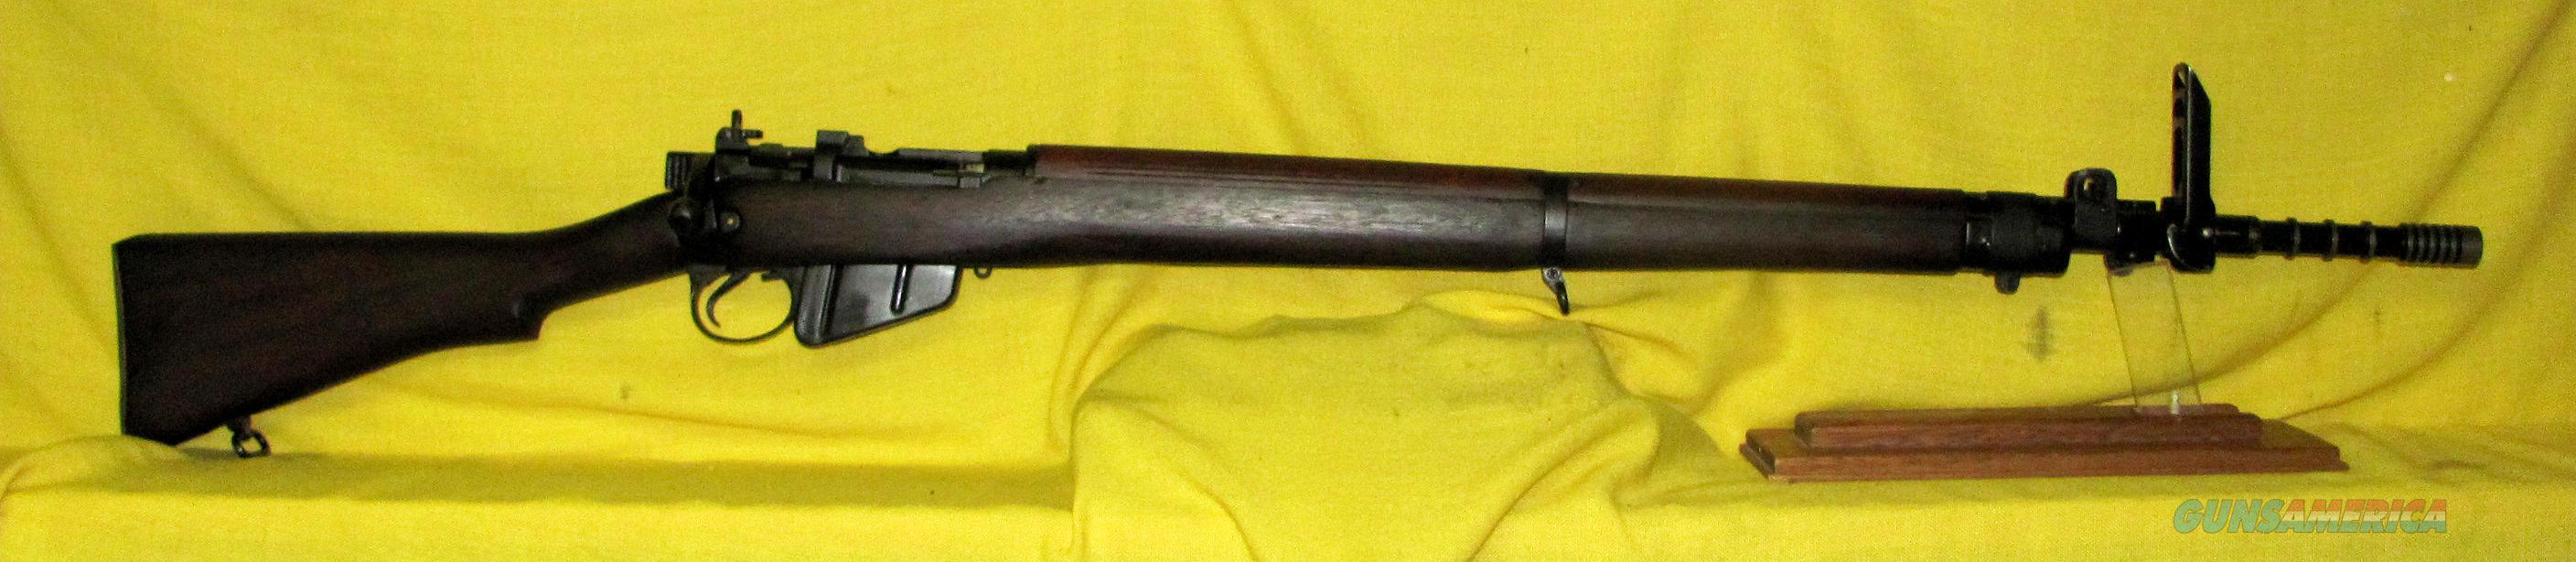 LONG BRANCH NO4 MK1  Guns > Rifles > Military Misc. Rifles Non-US > Other